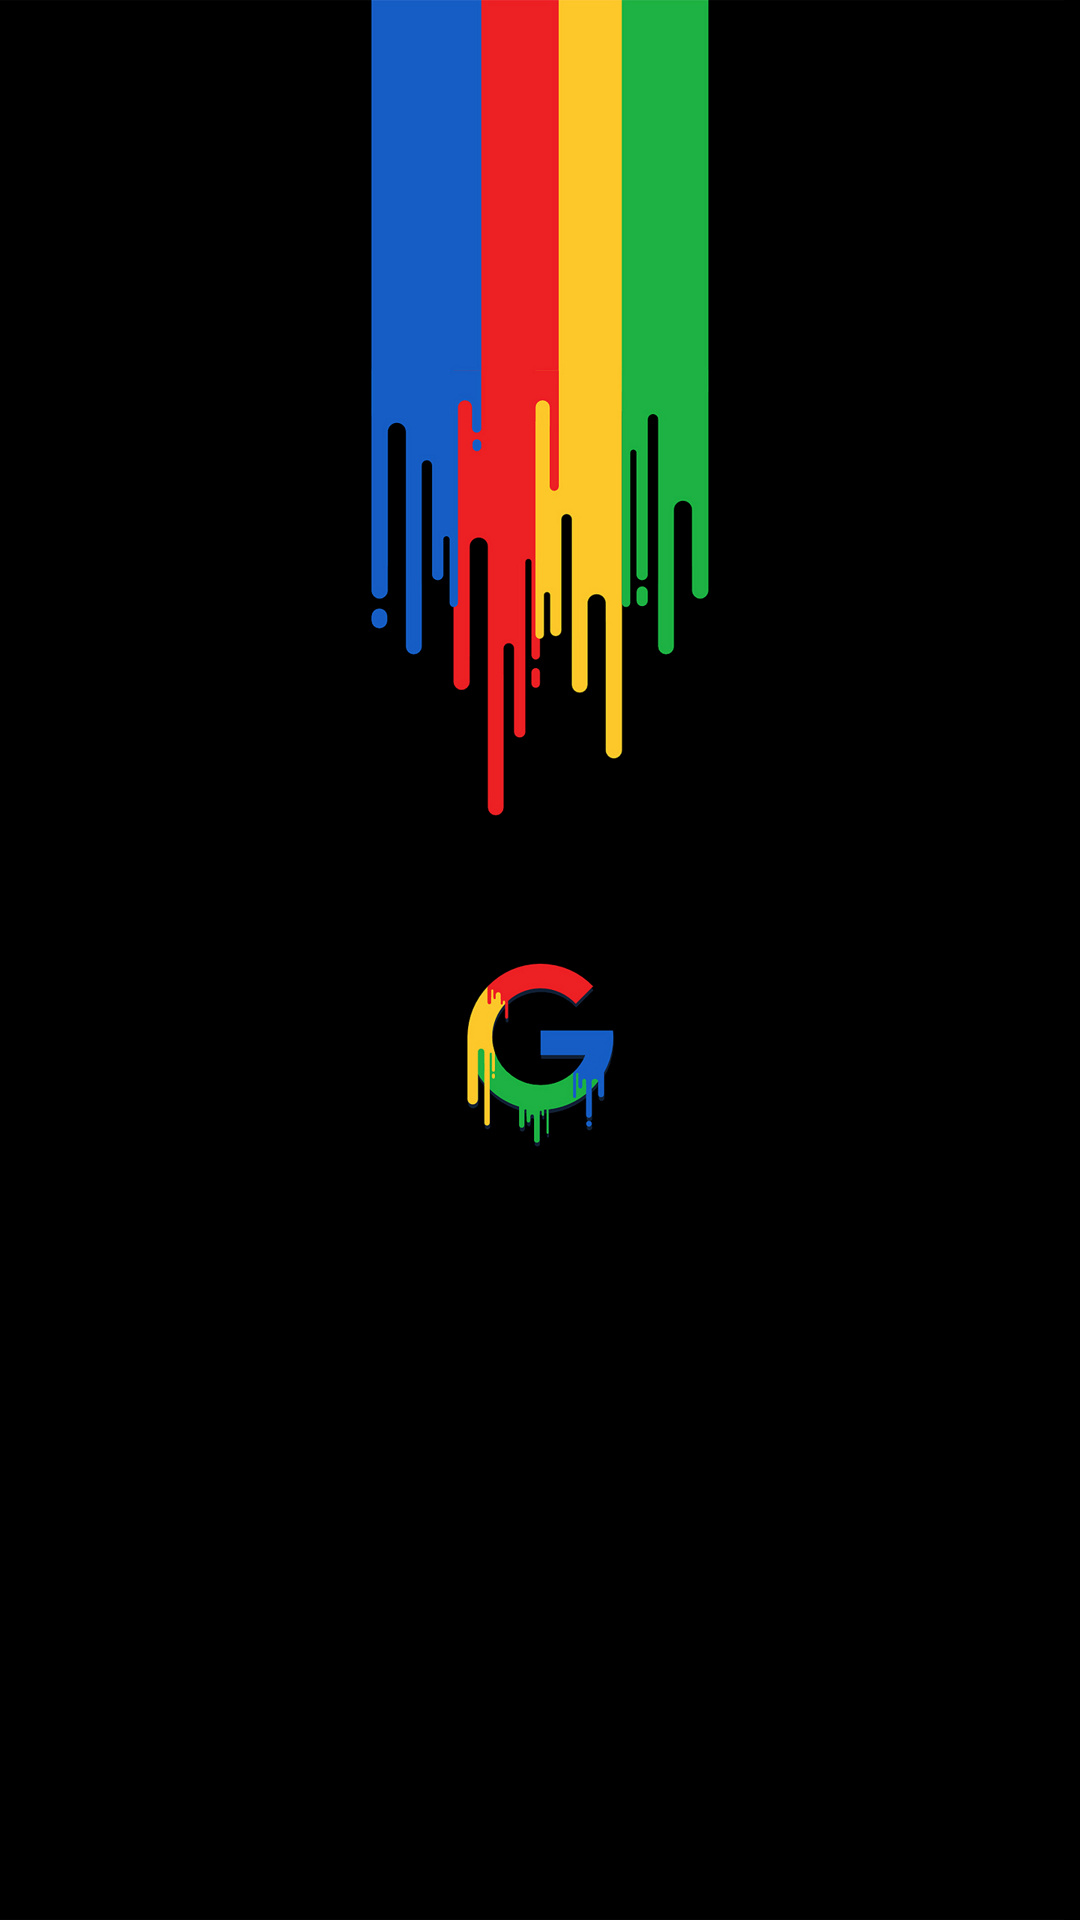 Pixel Paint Wallpaper - [1080x1920]